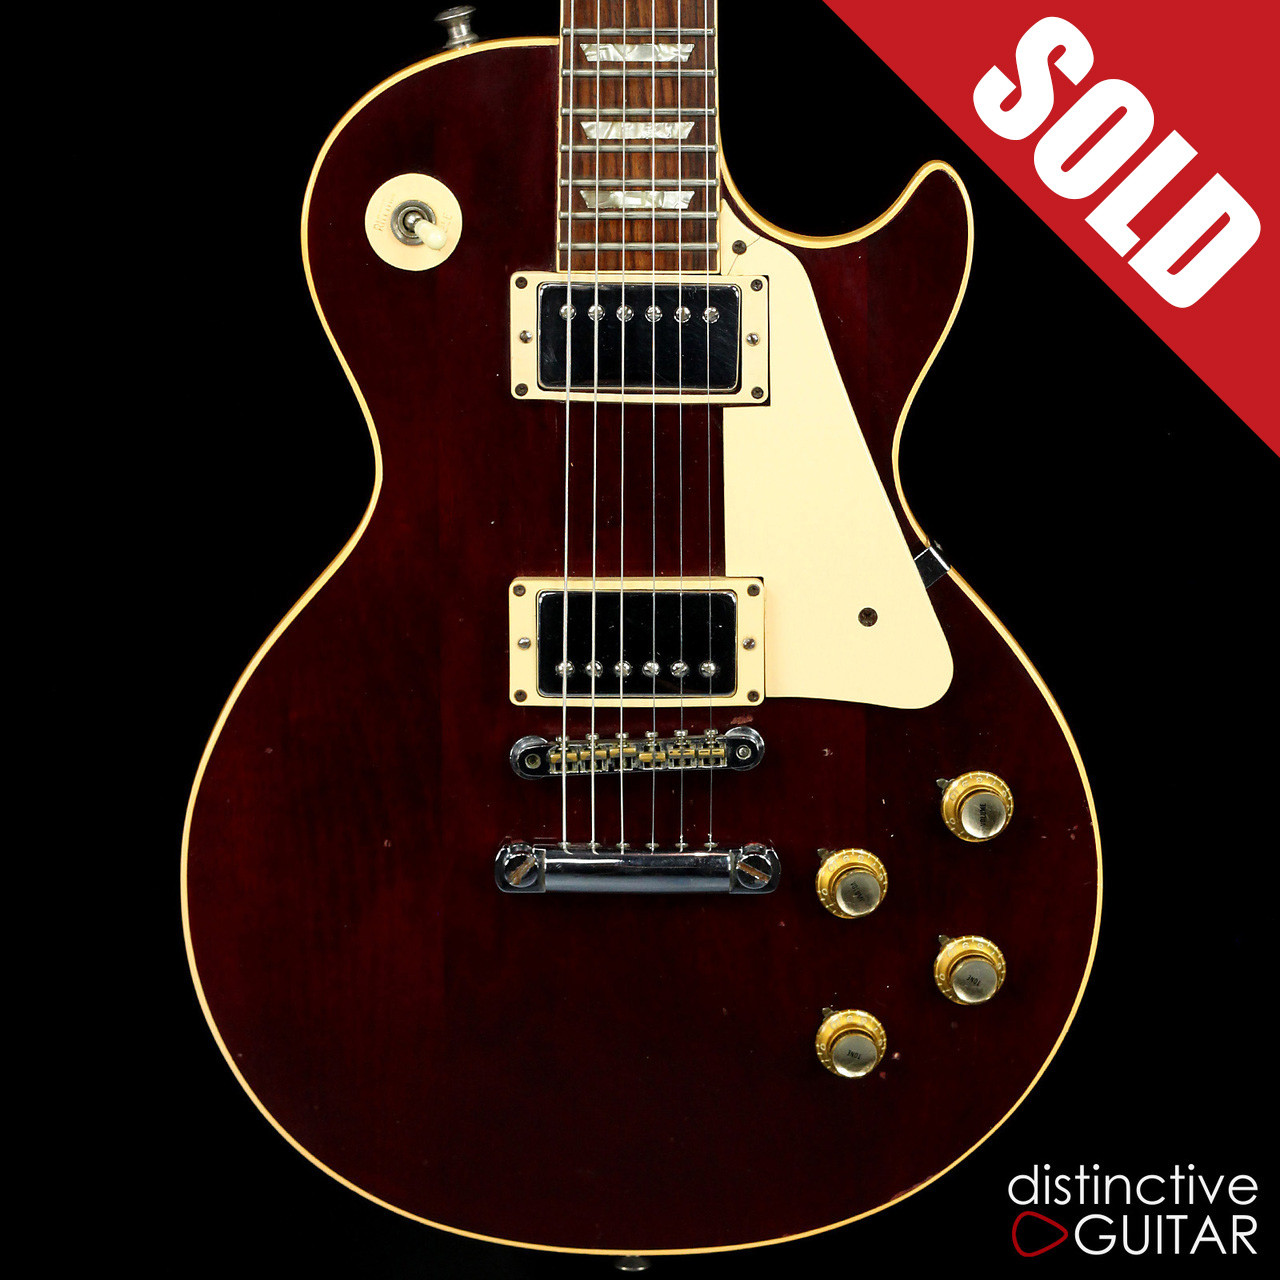 1975 gibson les paul deluxe wine red Gibson Les Paul Deluxe 1973 1975 gibson les paul deluxe wine red image 1 image 1